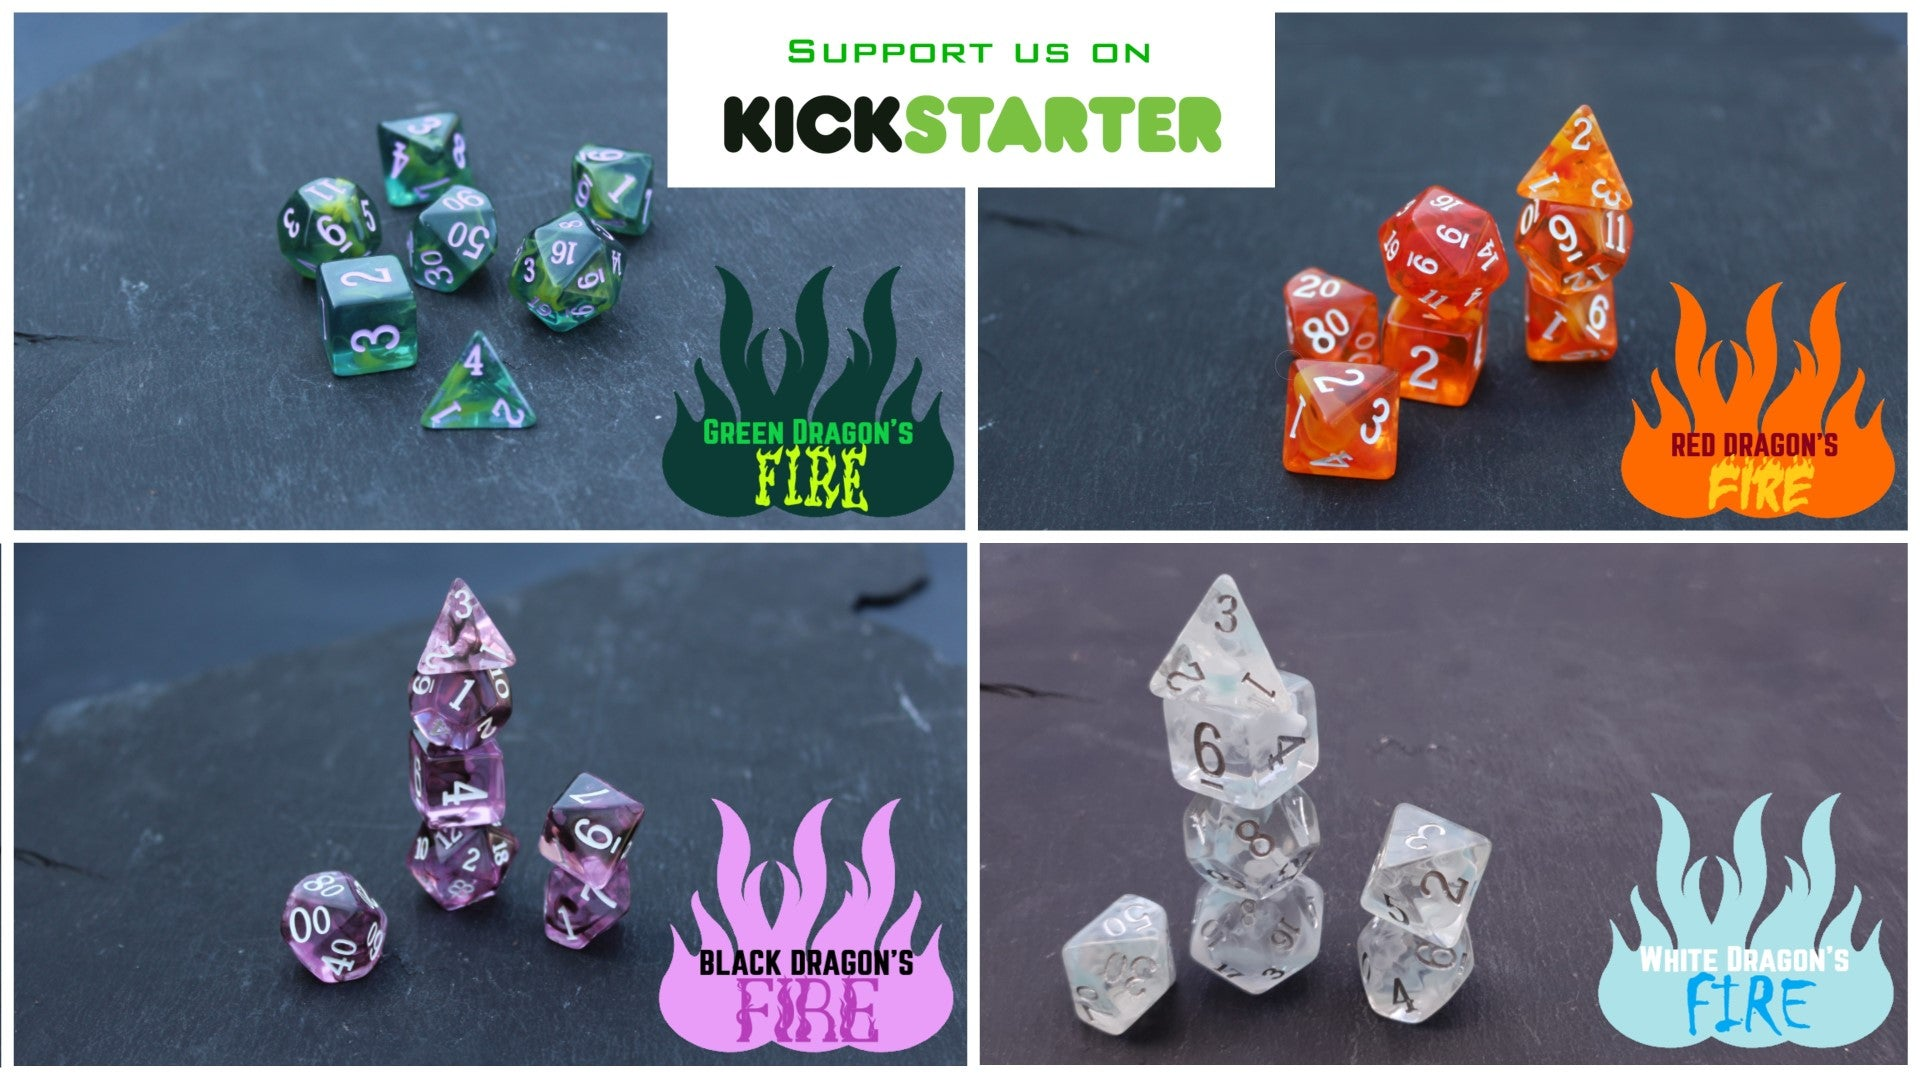 Dakota Irish's first kickstarter